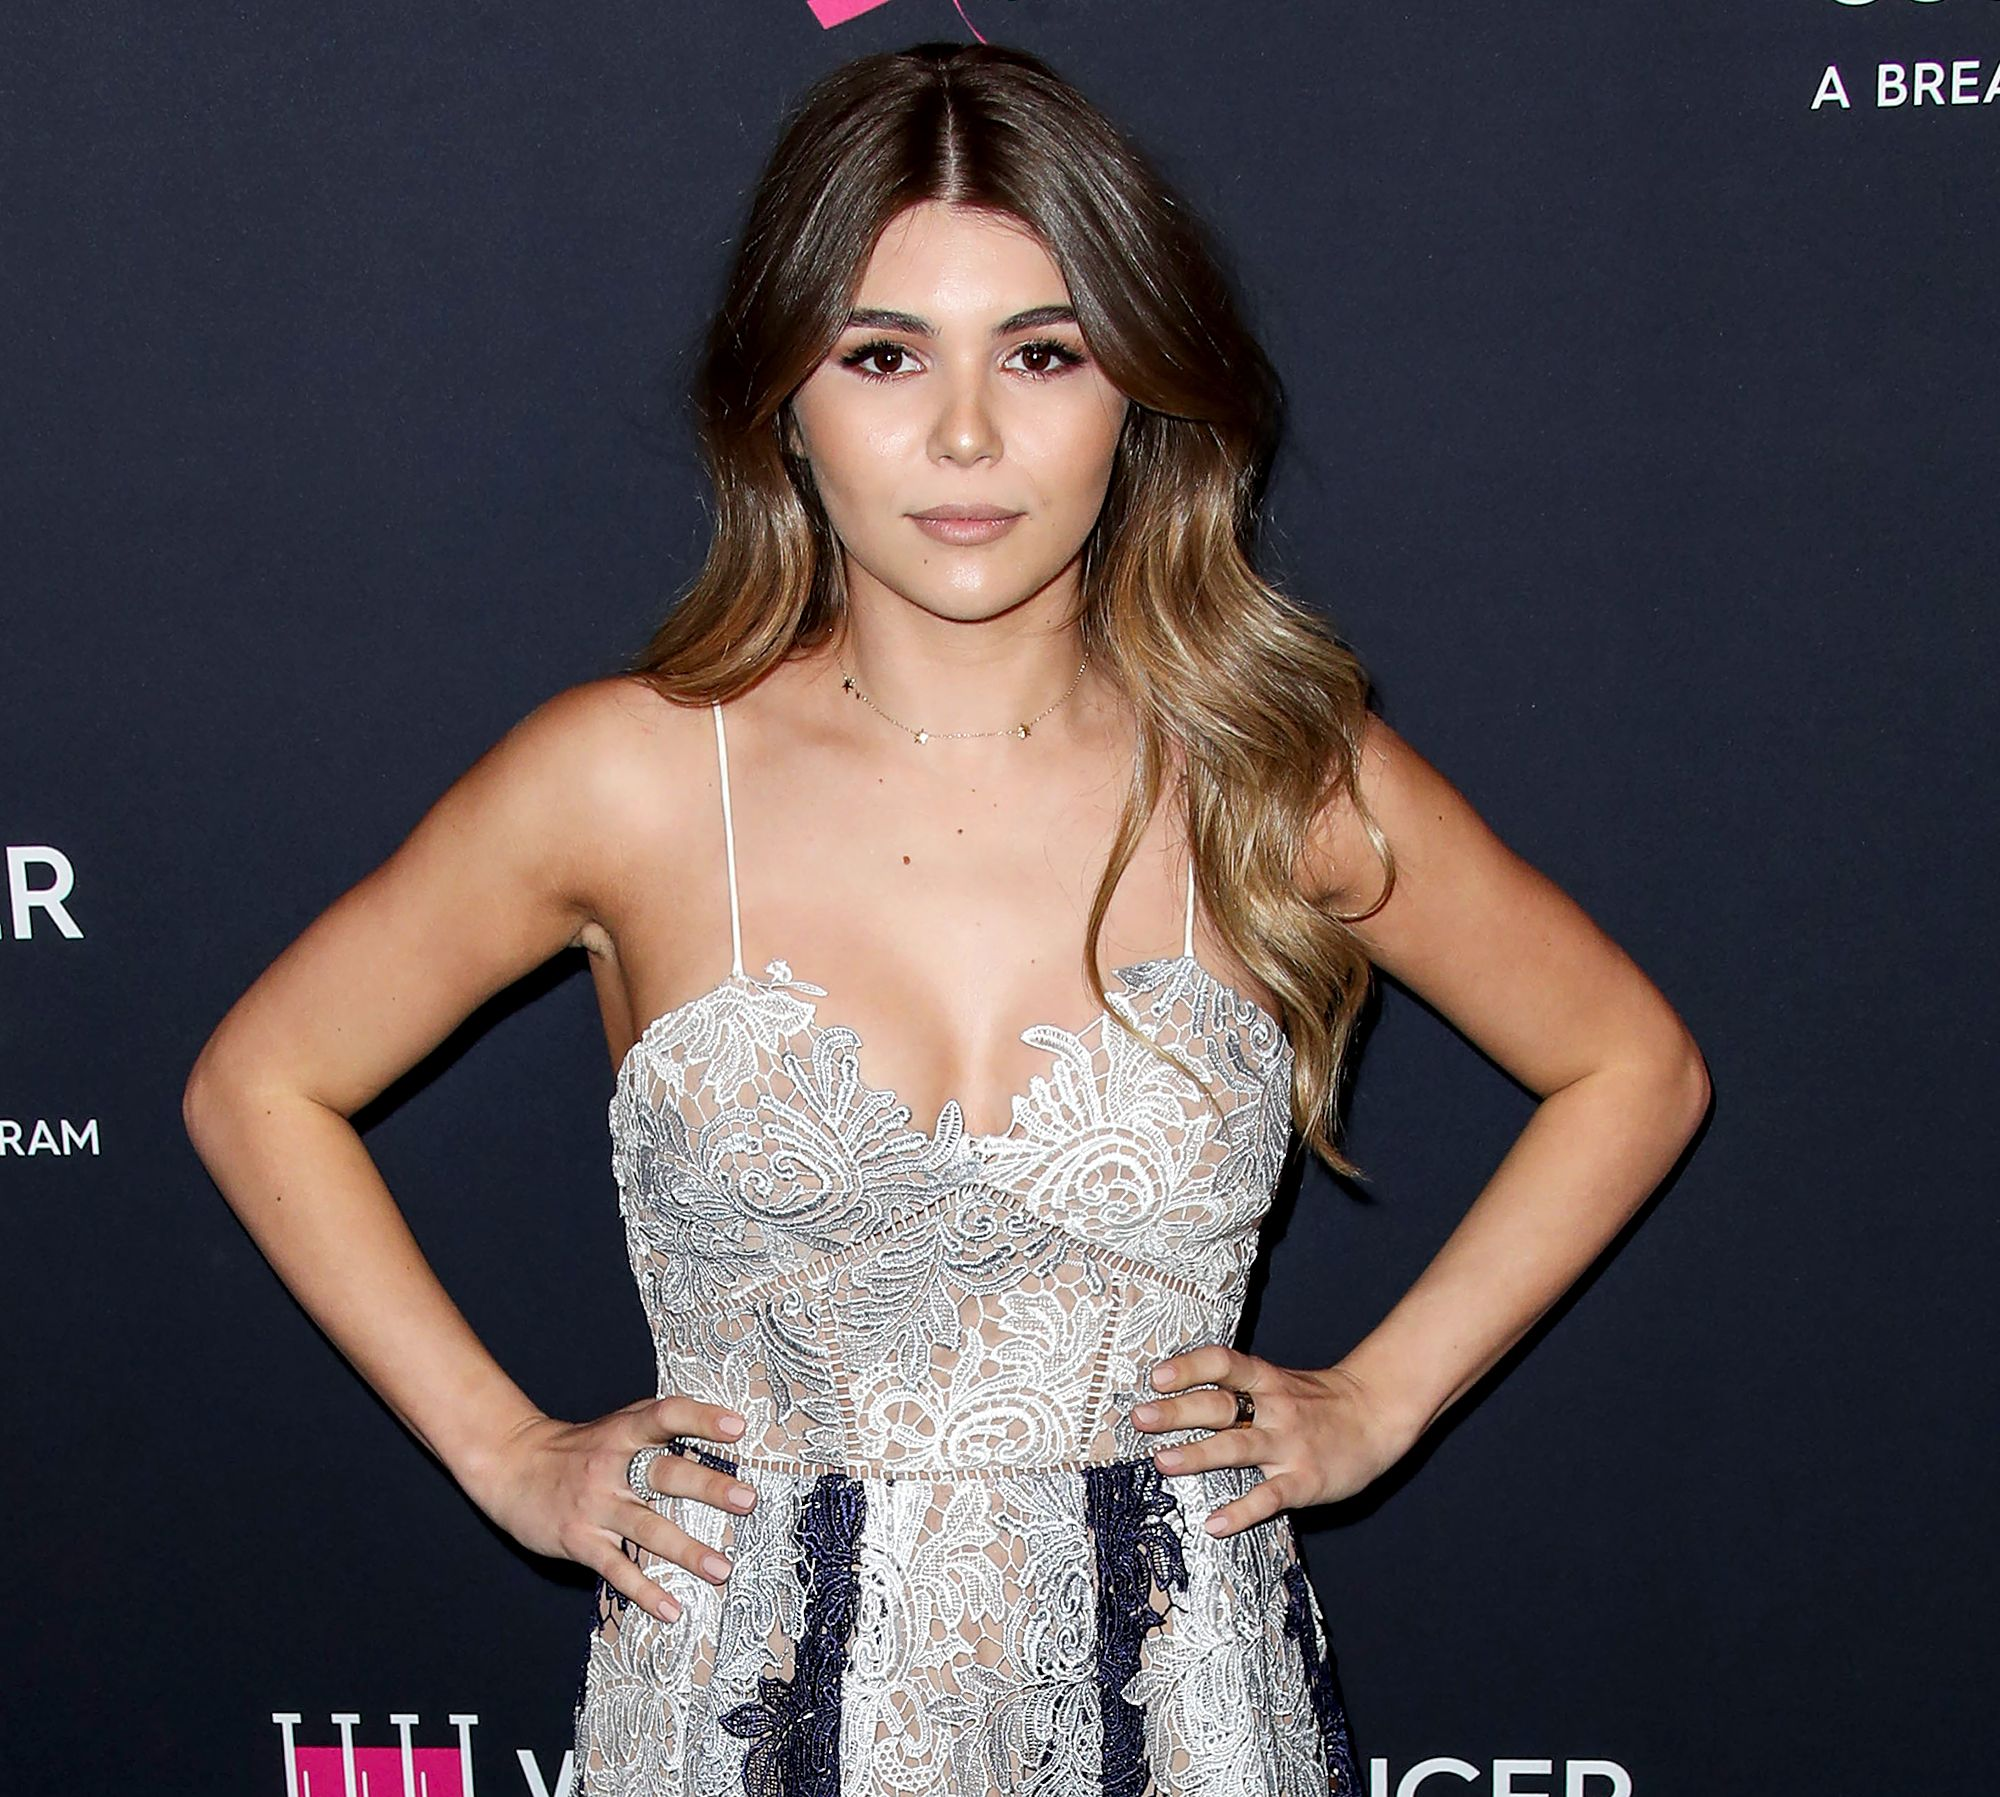 Why Olivia Jade's Return to YouTube Halted She Wants to